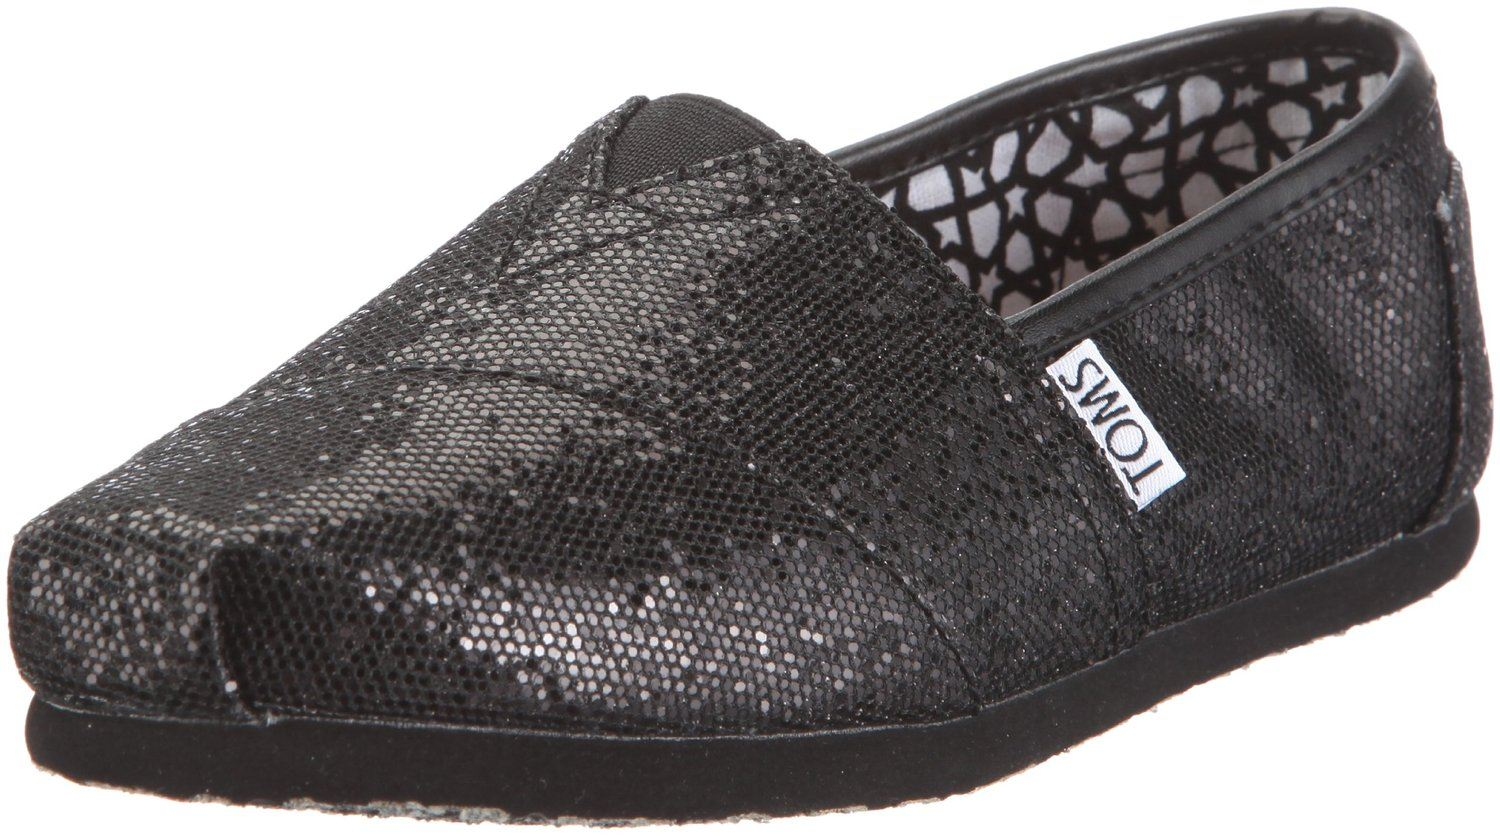 Shop Women's Toms Black size 7 Flats & Loafers at a discounted price at Poshmark. Description: Excellent condition! These Classics feature a glitter upper for added glam! MSRP $ Sold by goggetg. Fast delivery, full service customer support.